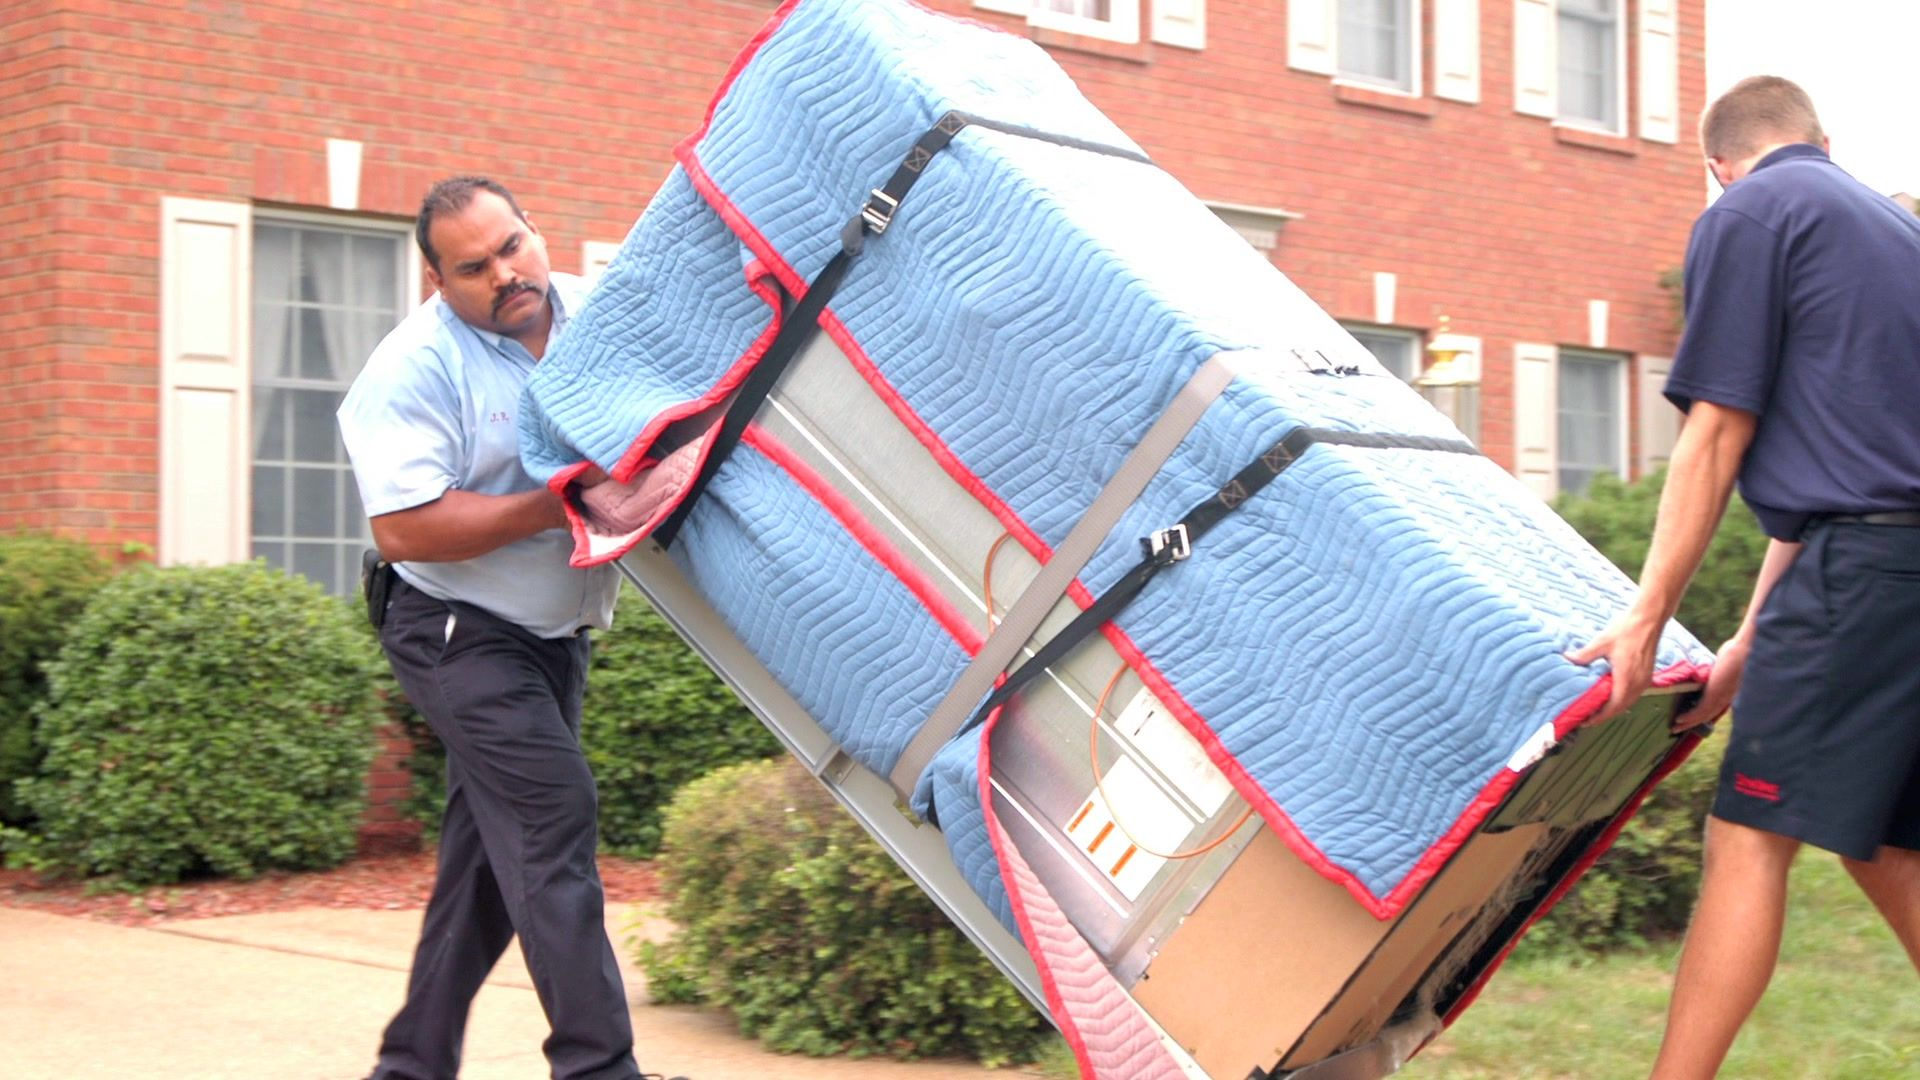 Cheap Movers Chicago Affordable But With Great Quality